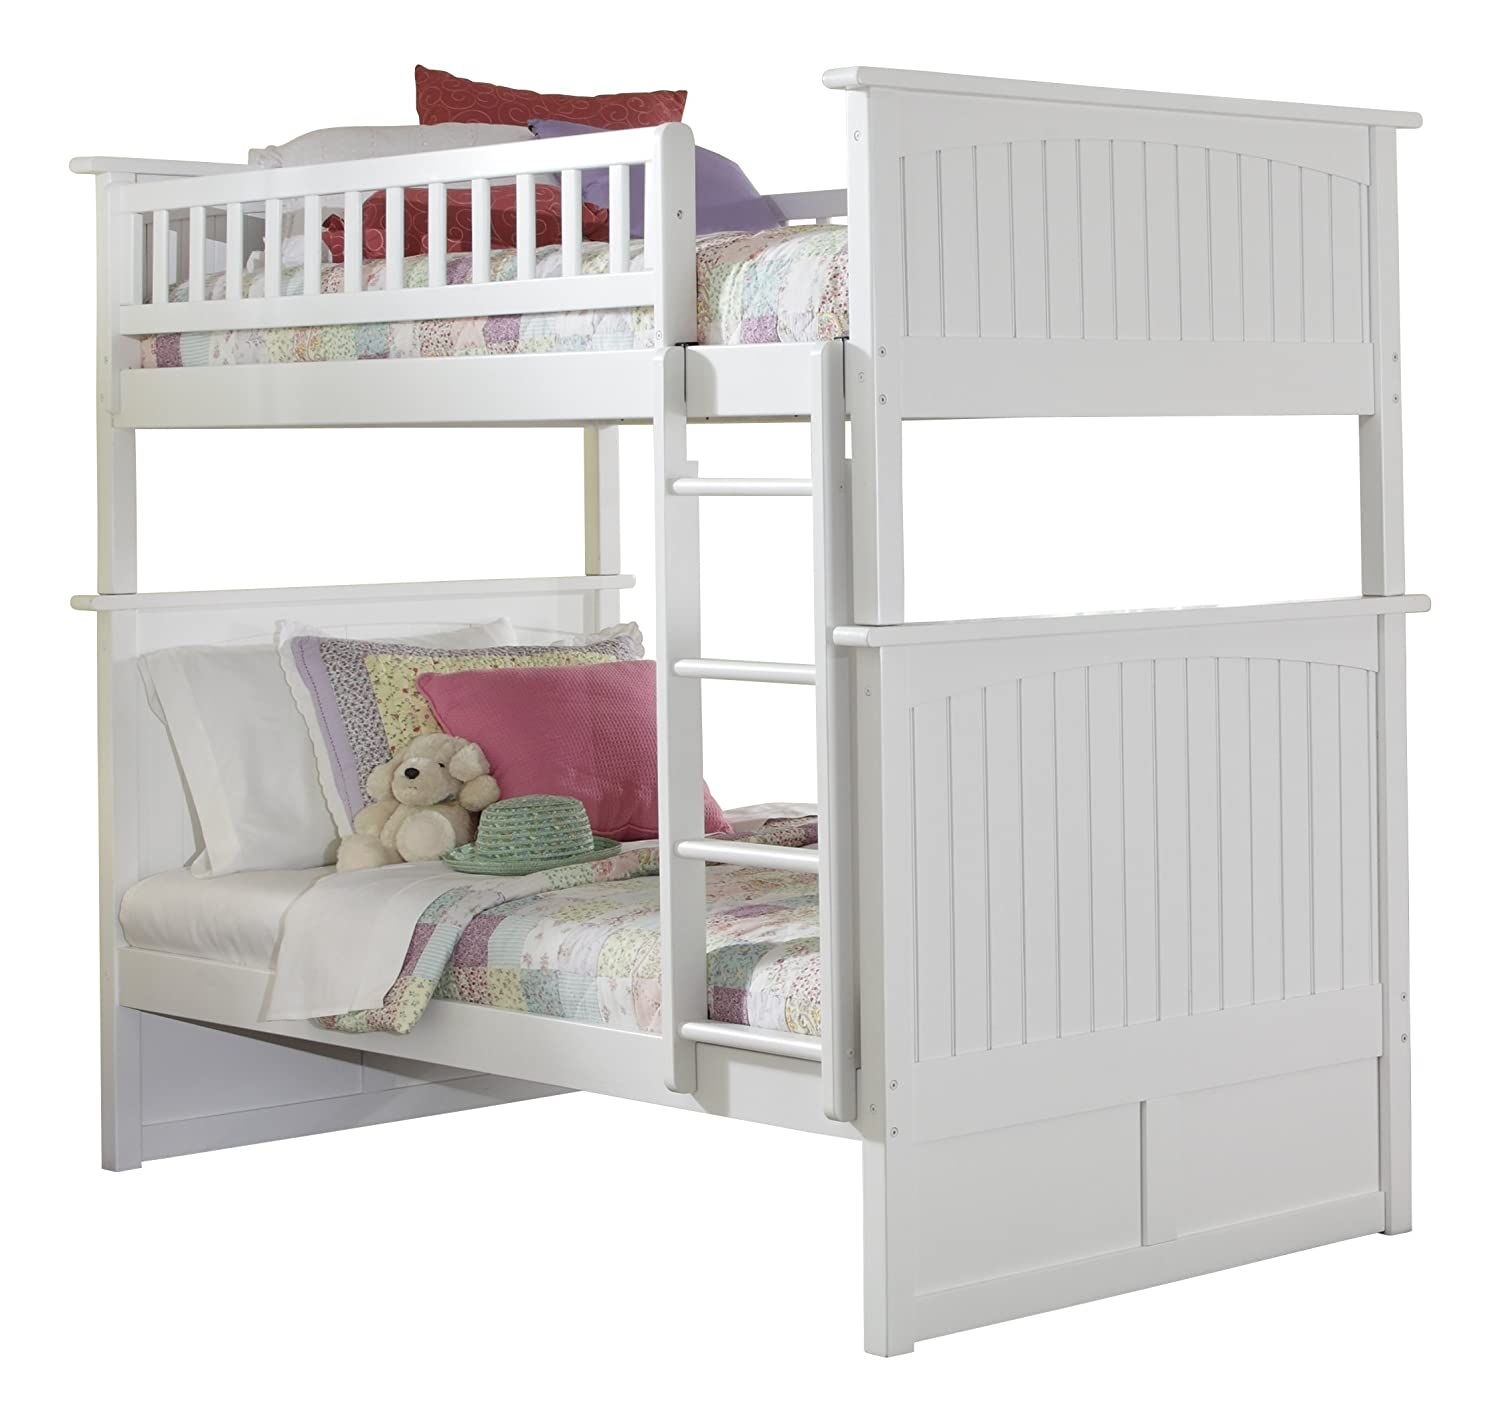 Amazon Nantucket Bunk Bed Twin Over Twin Caramel Latte